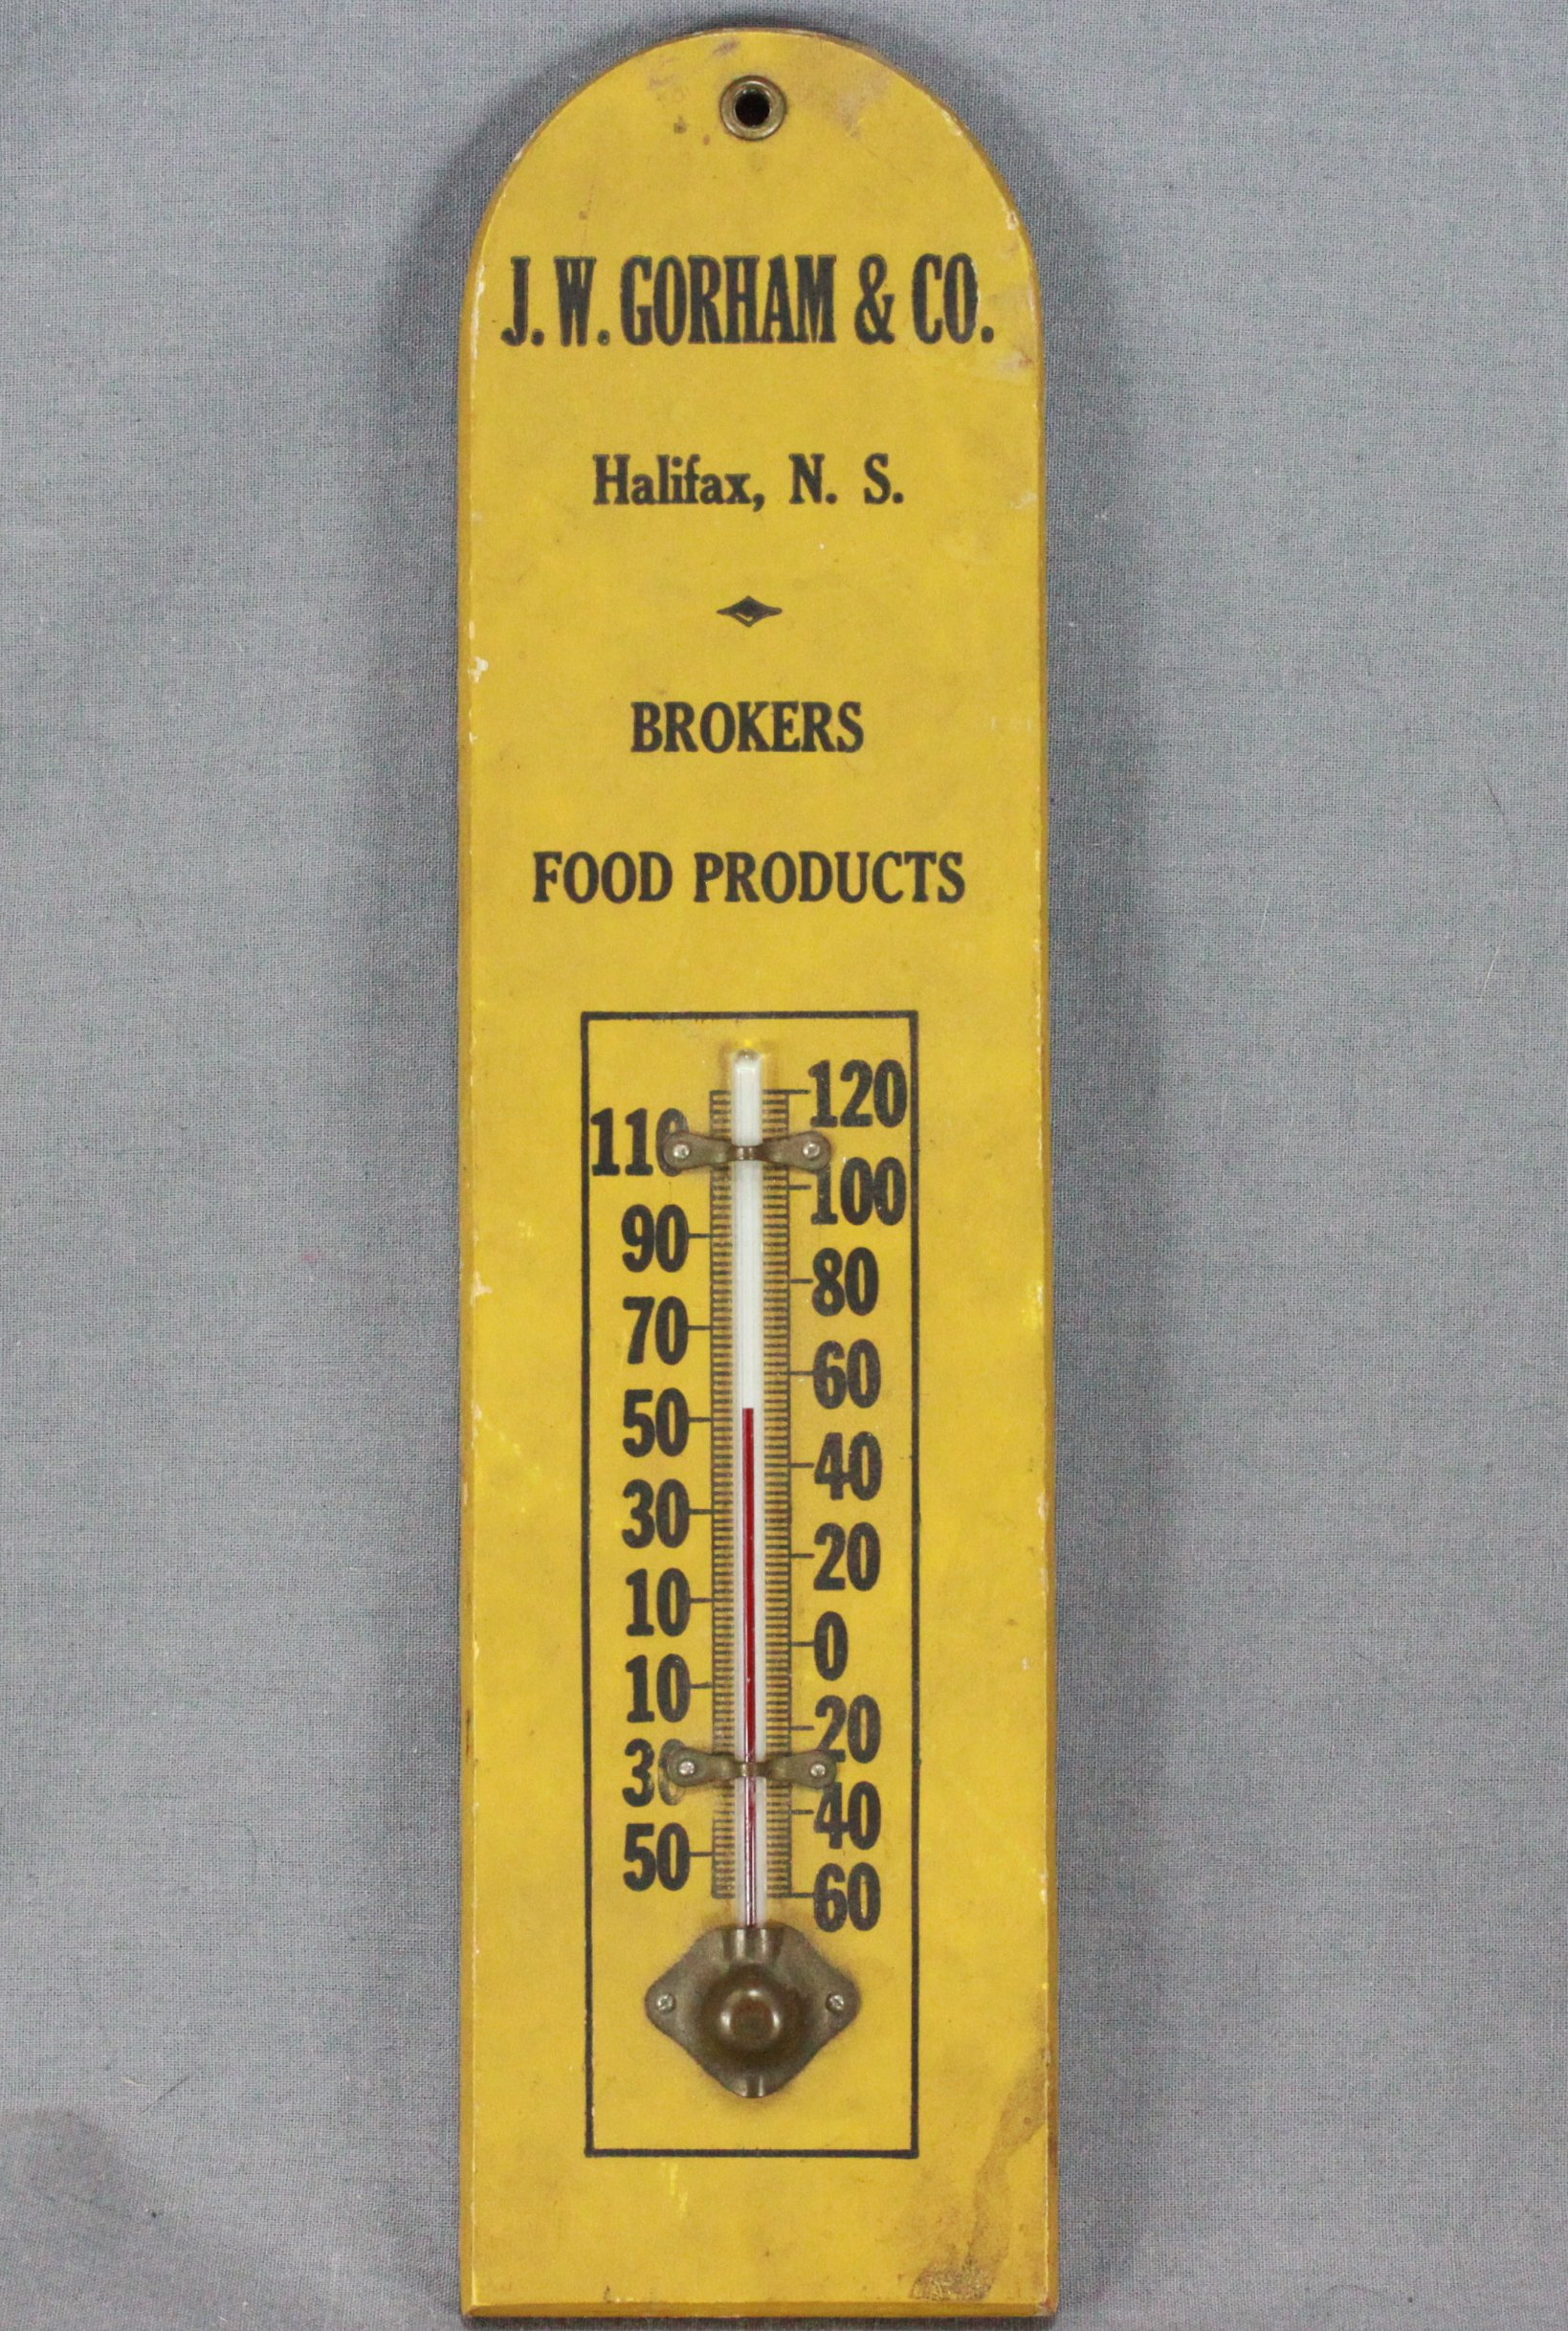 Halifax Advertising Thermometer